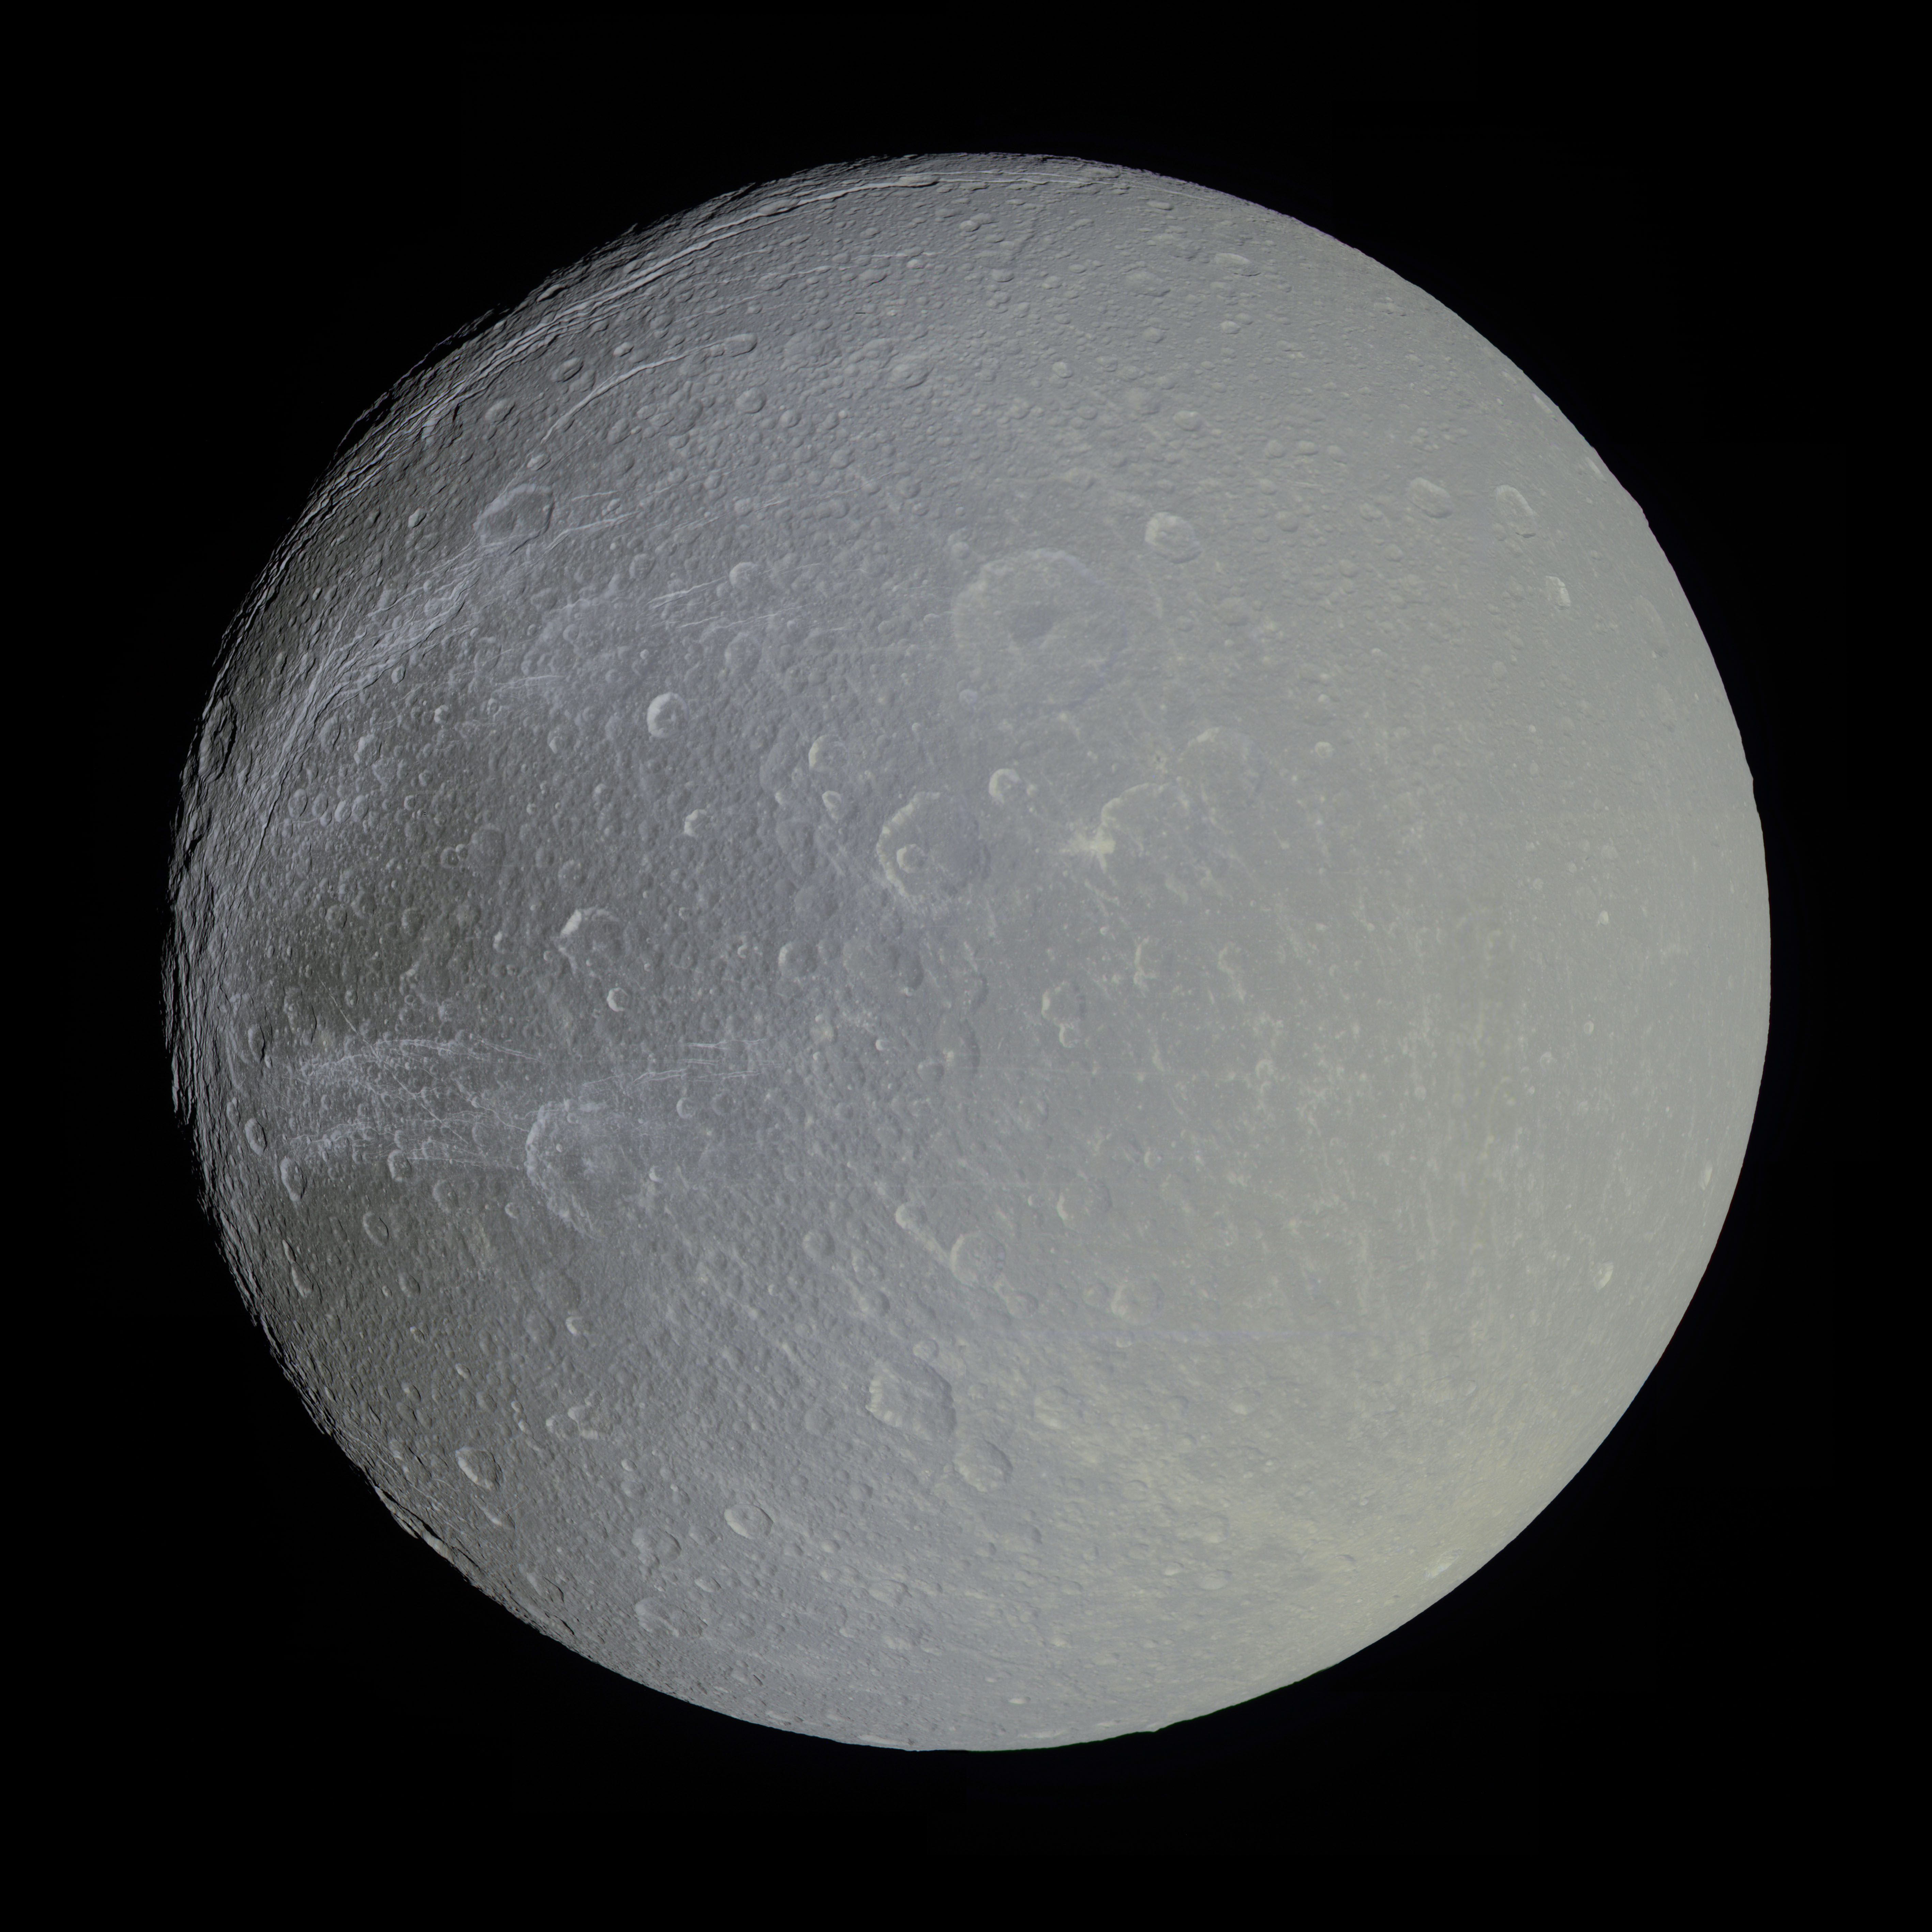 20121023_dione_global_mosaic_20100407_canale